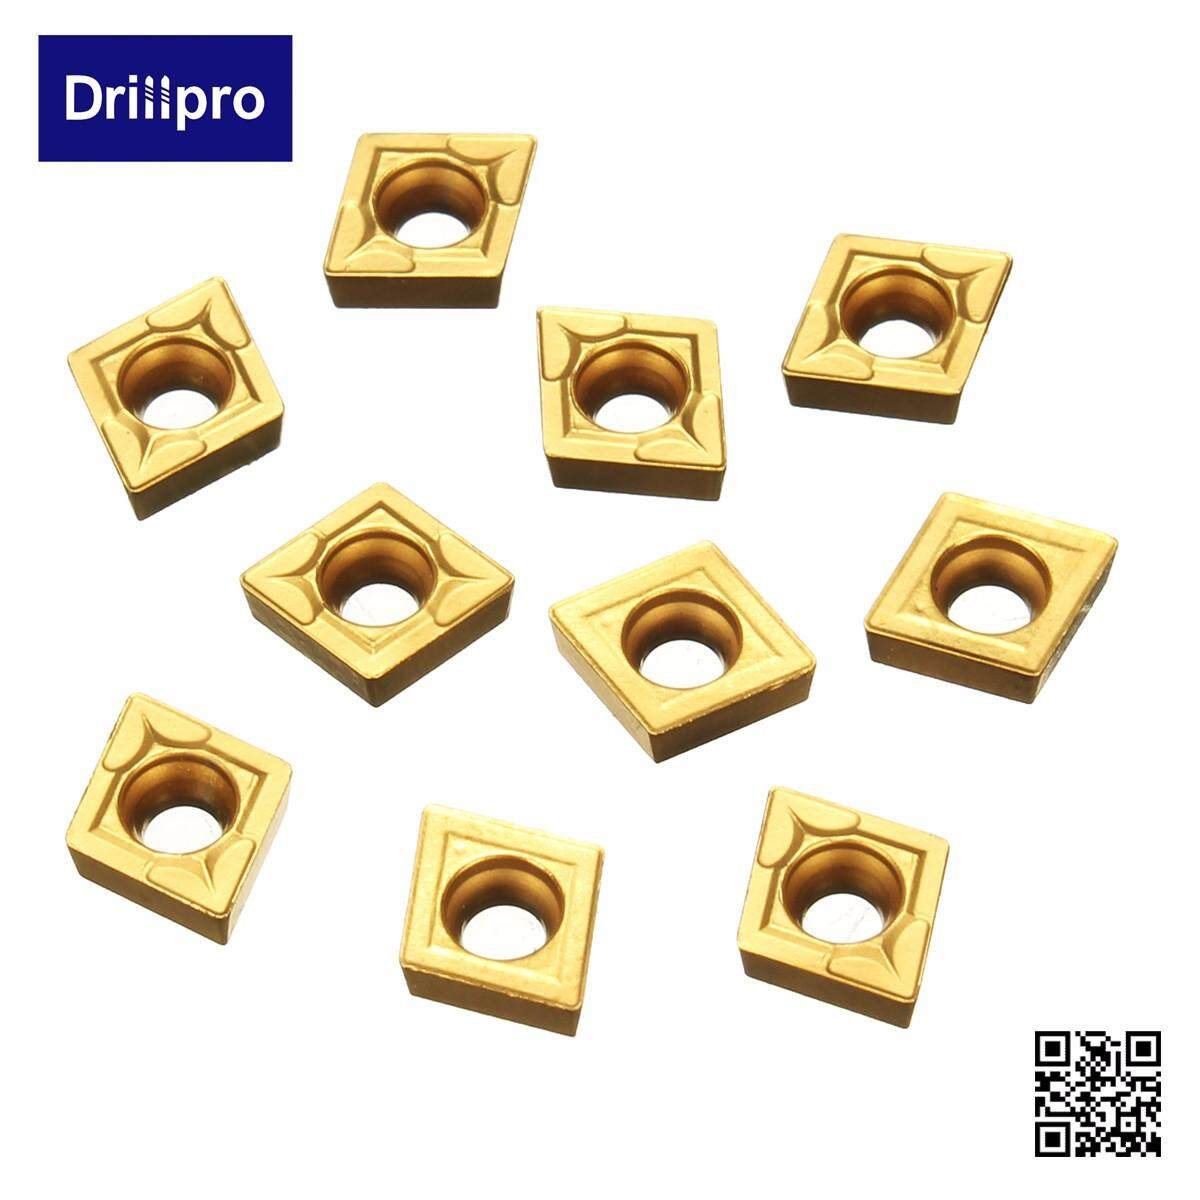 Drillpro 10Pcs CCMT060204-HM YBC251 Carbide Insert Titanium Coated Carbide Blades Cutter